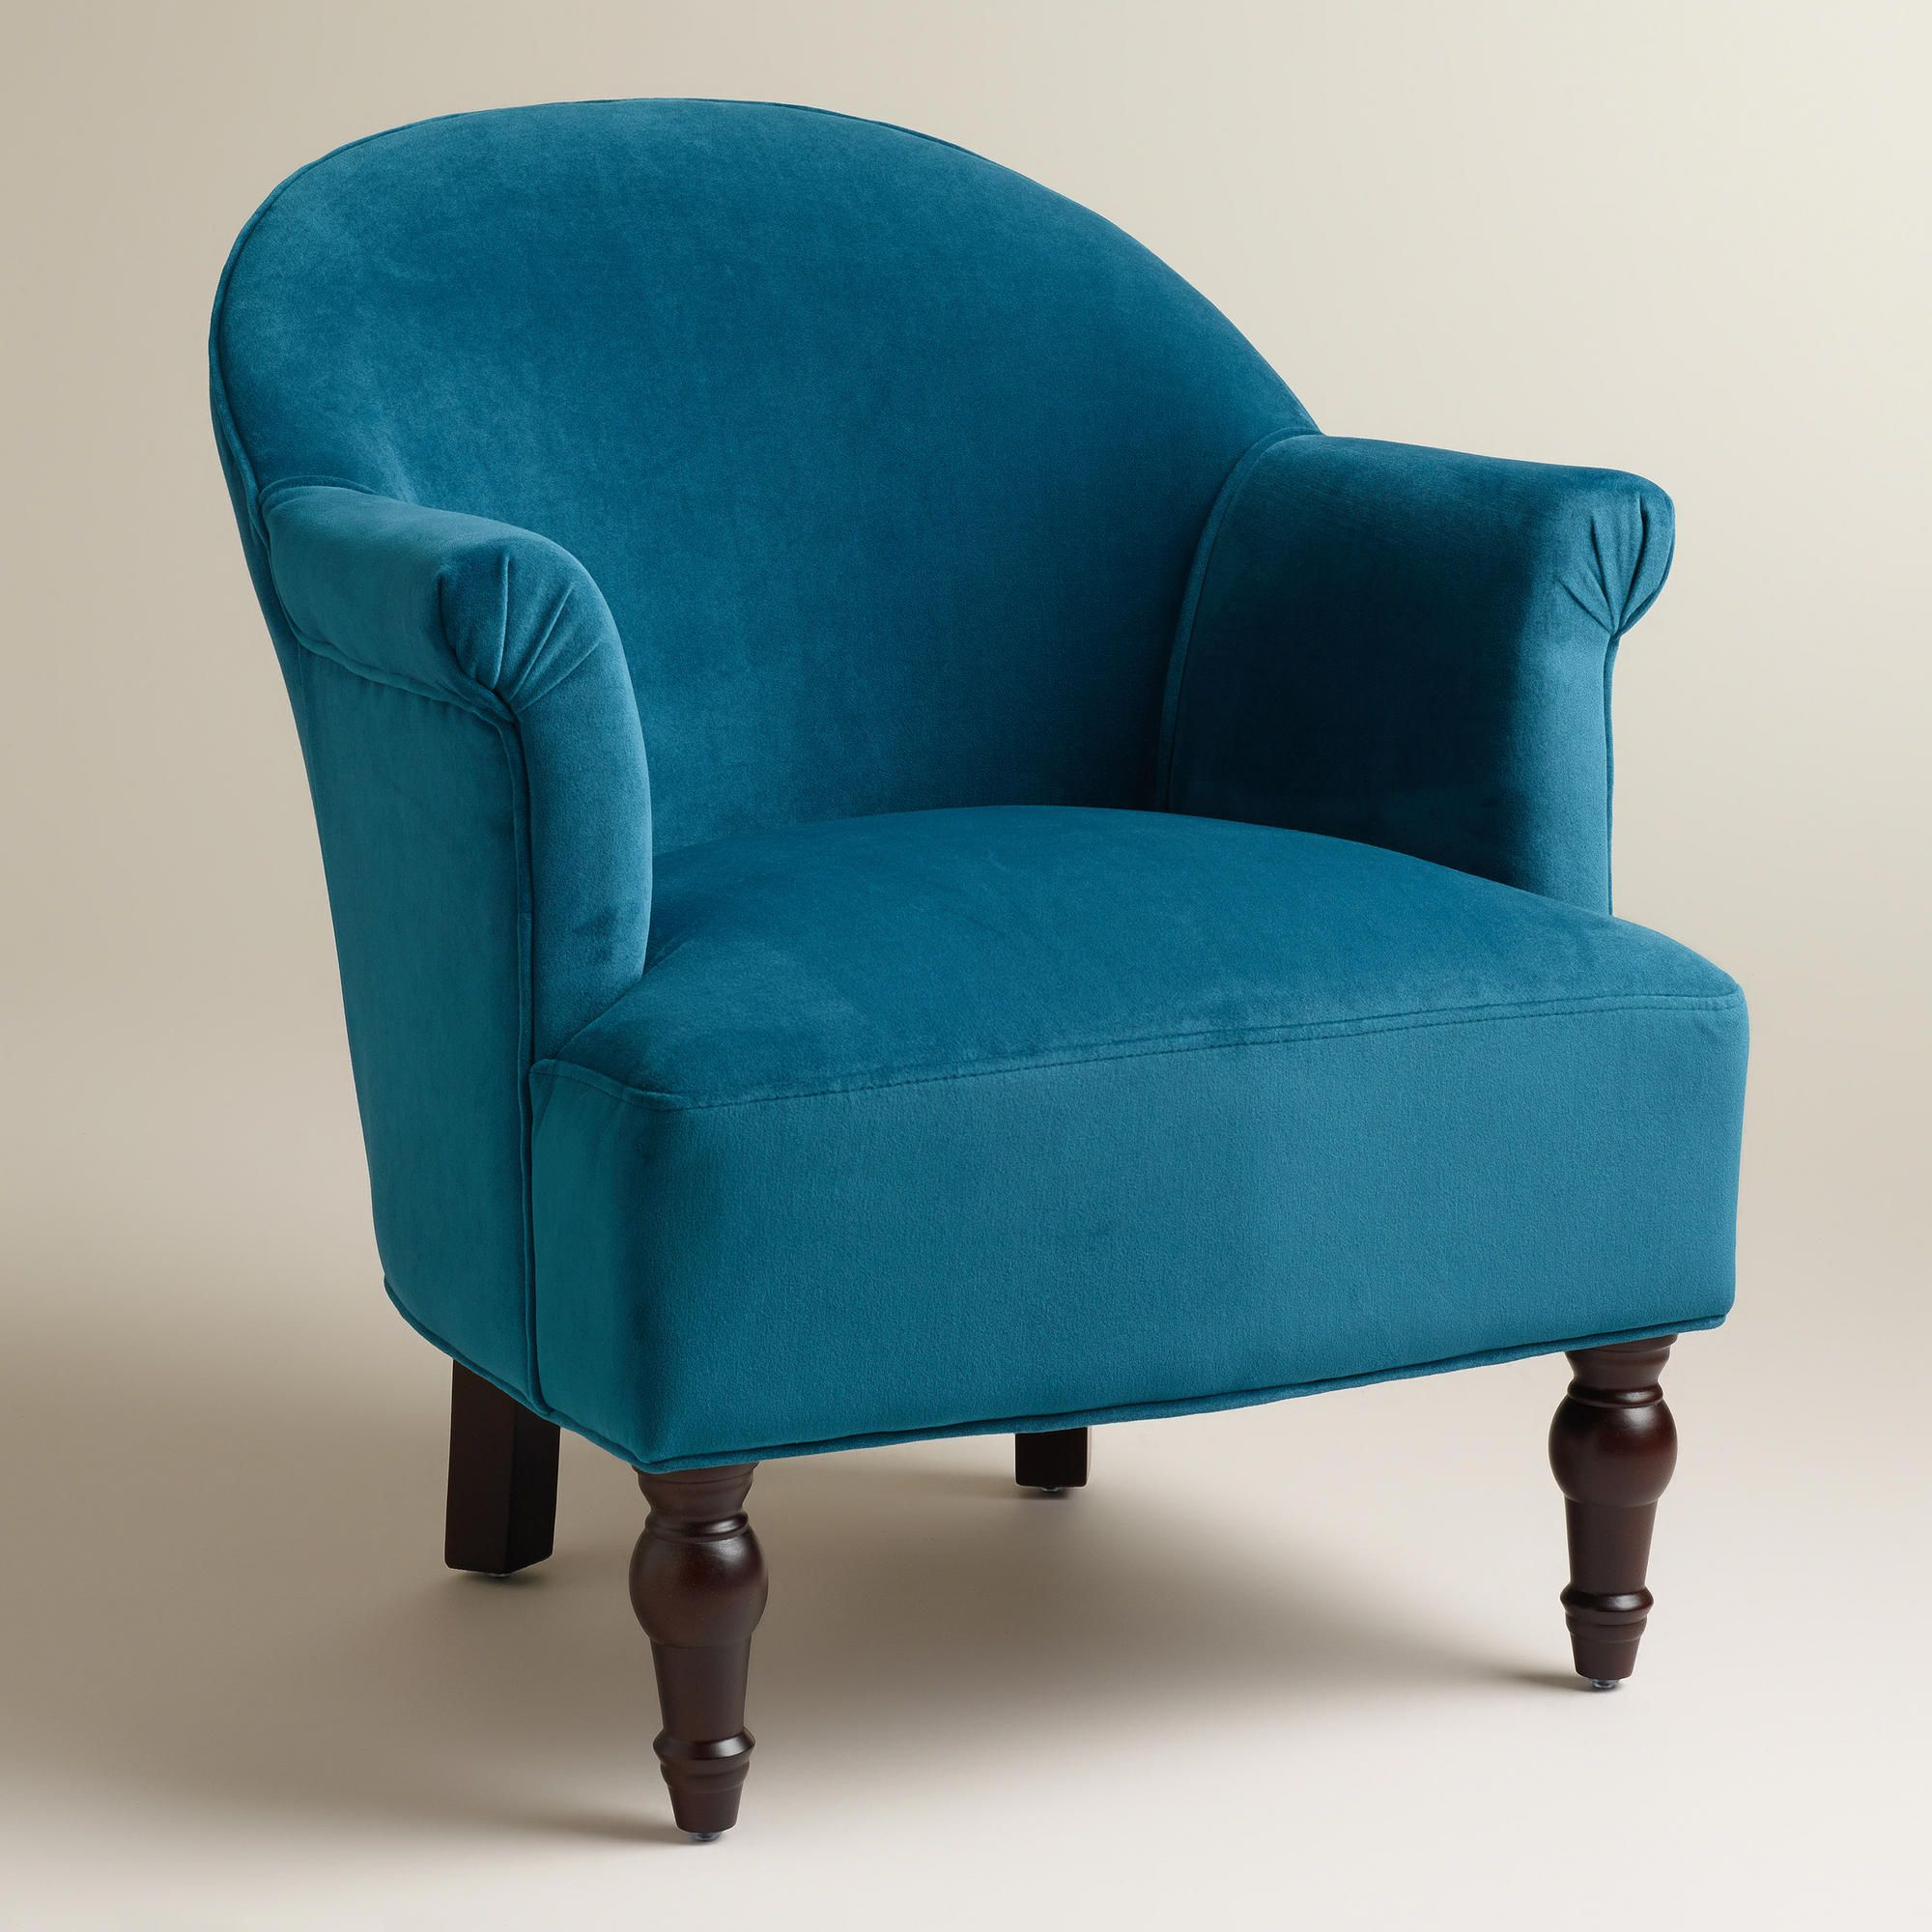 Peacock Blue Accent Chair Peacock Blue Lorna Chair World Market Living Room